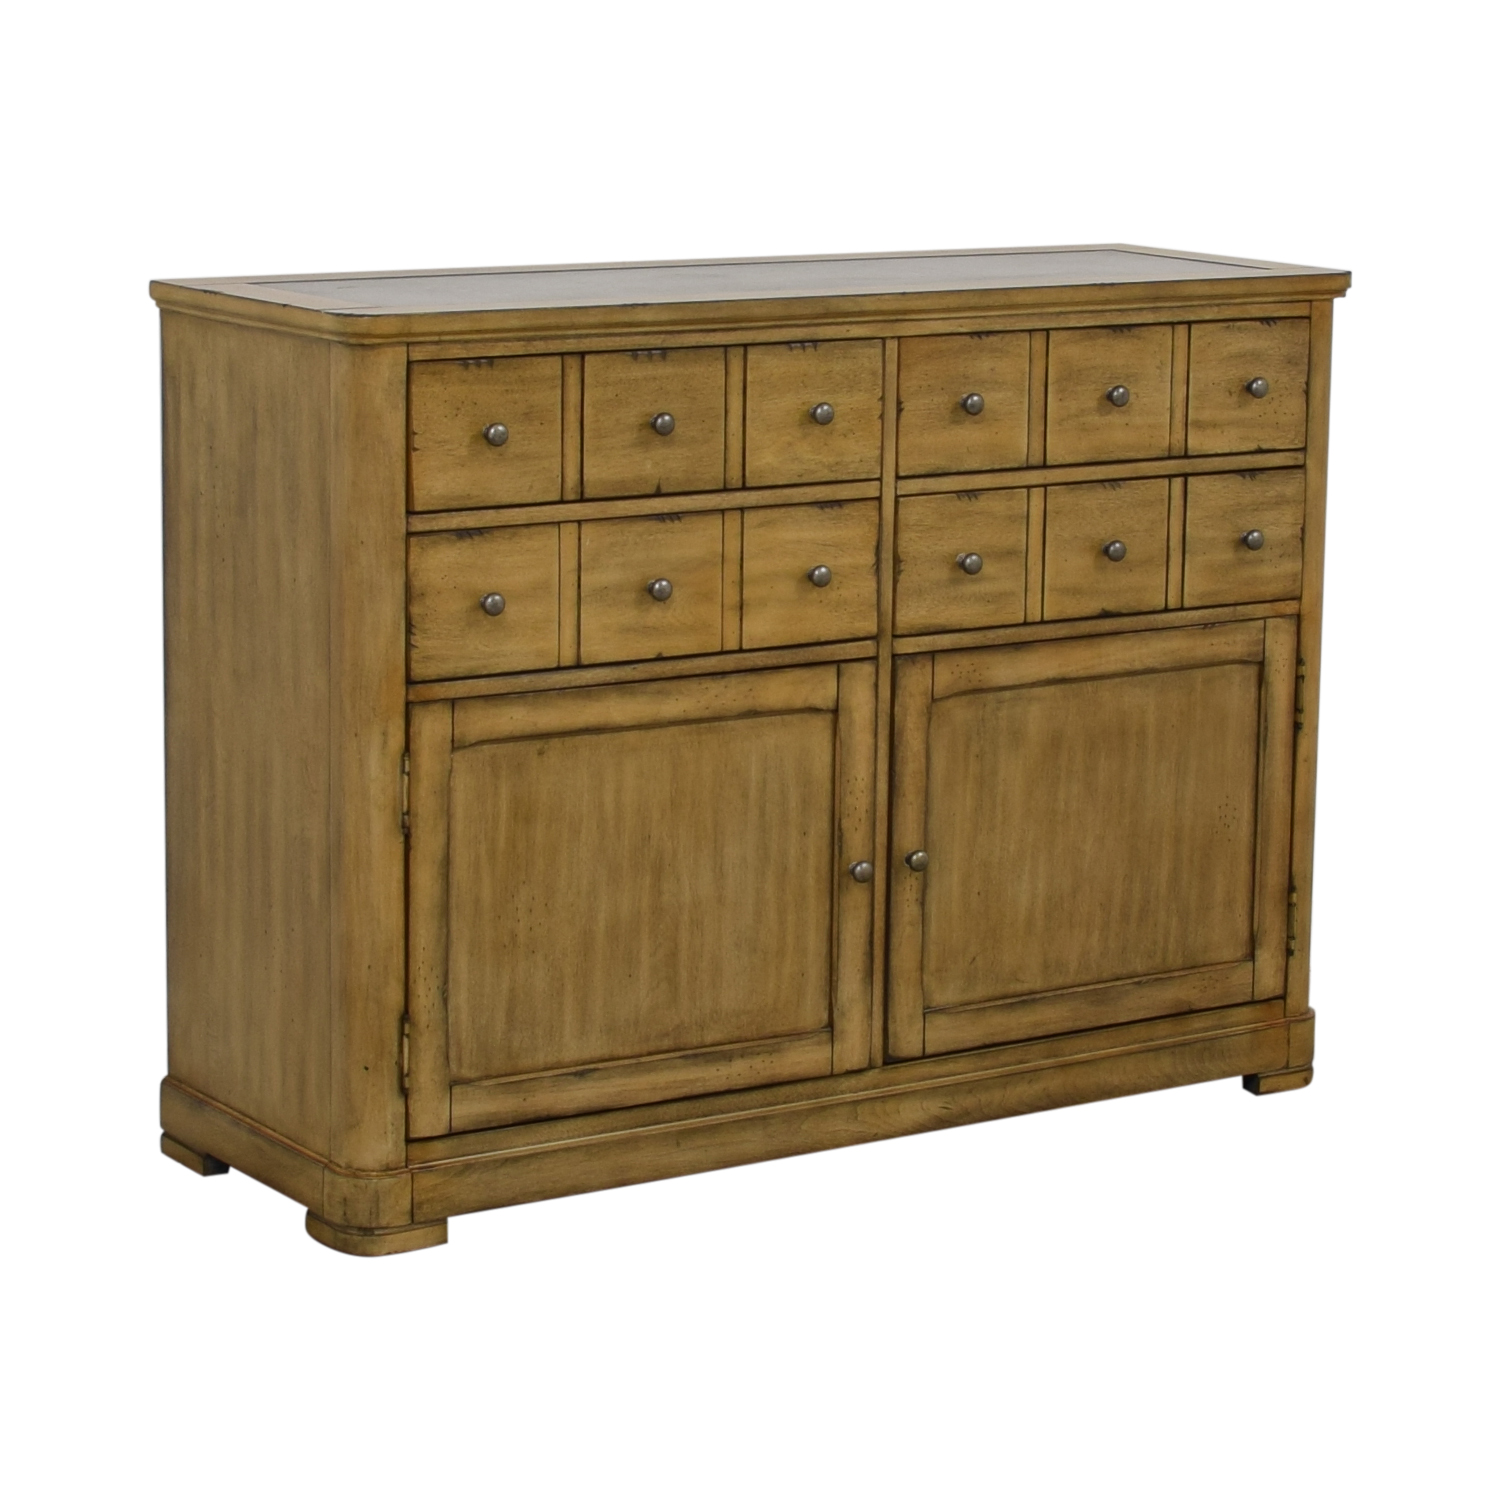 Raymour & Flanigan Raymour & Flanigan Four-Drawer Side Cabinet Buffet second hand